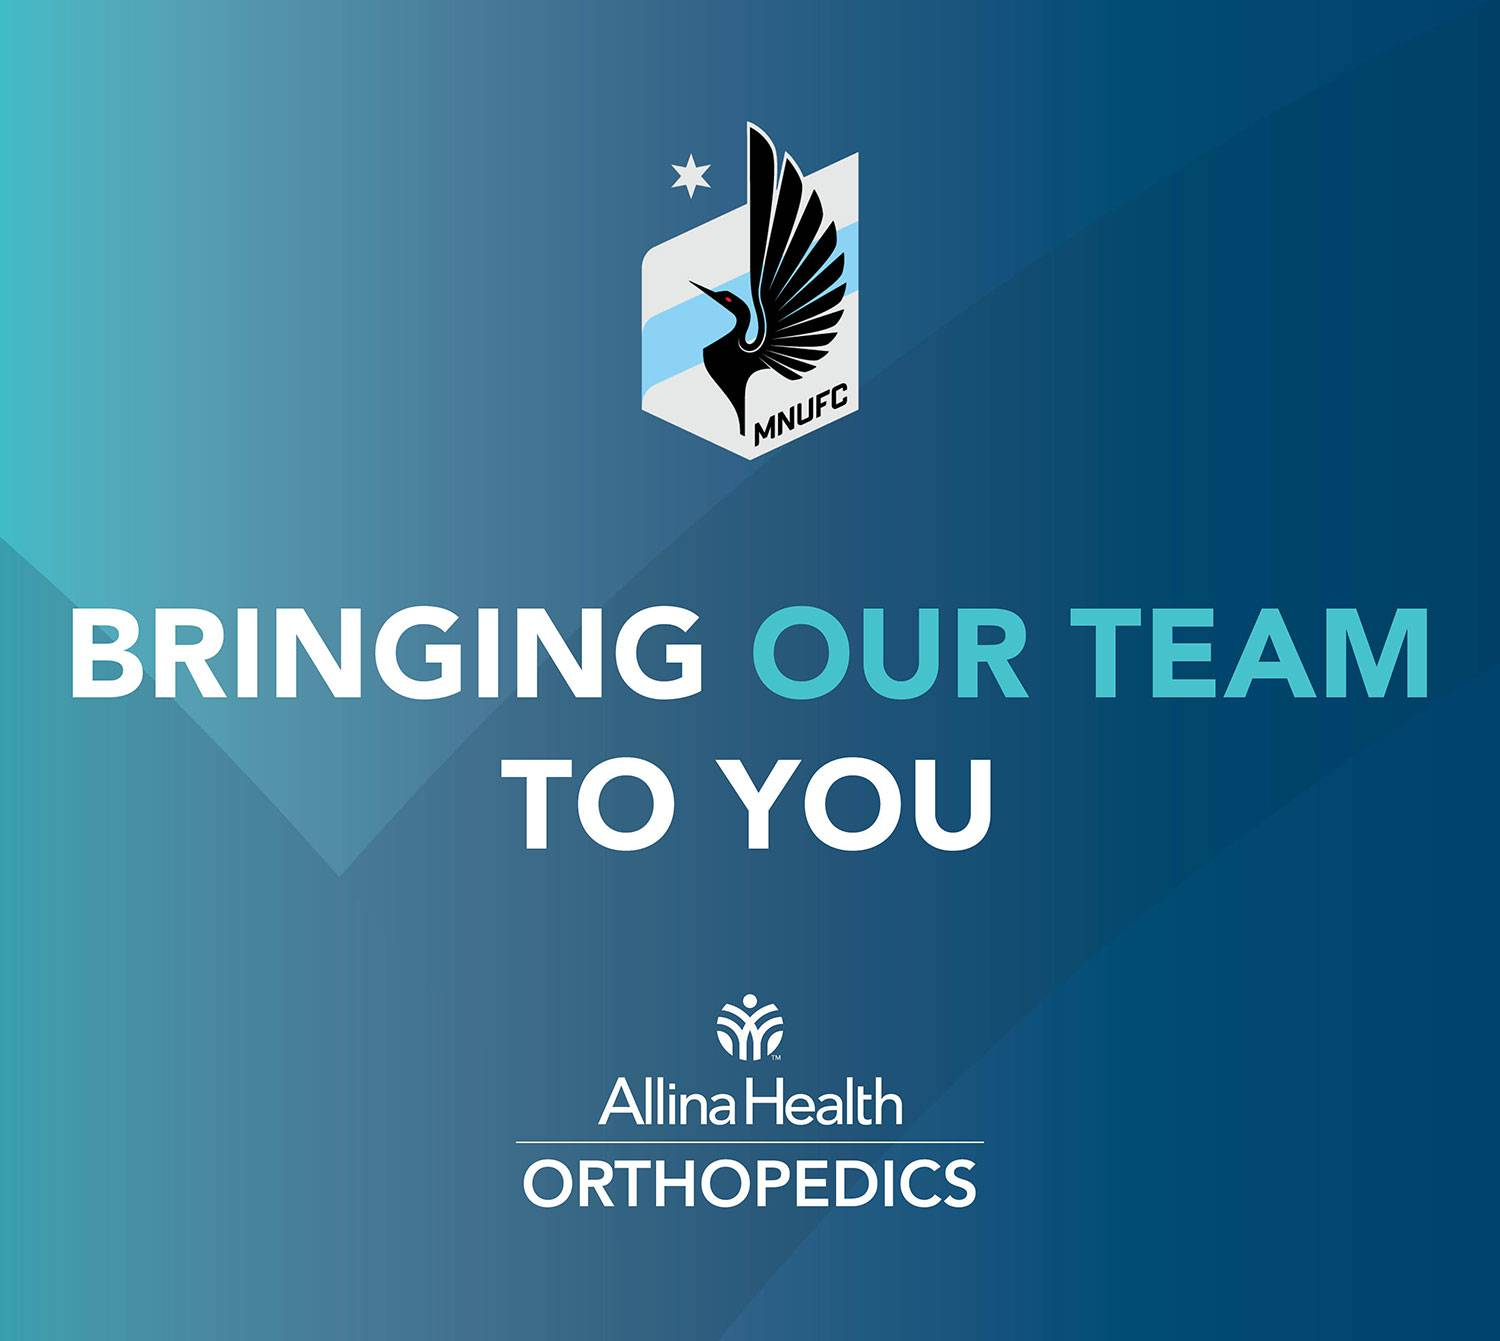 Official orthopedic partner of MNUFC